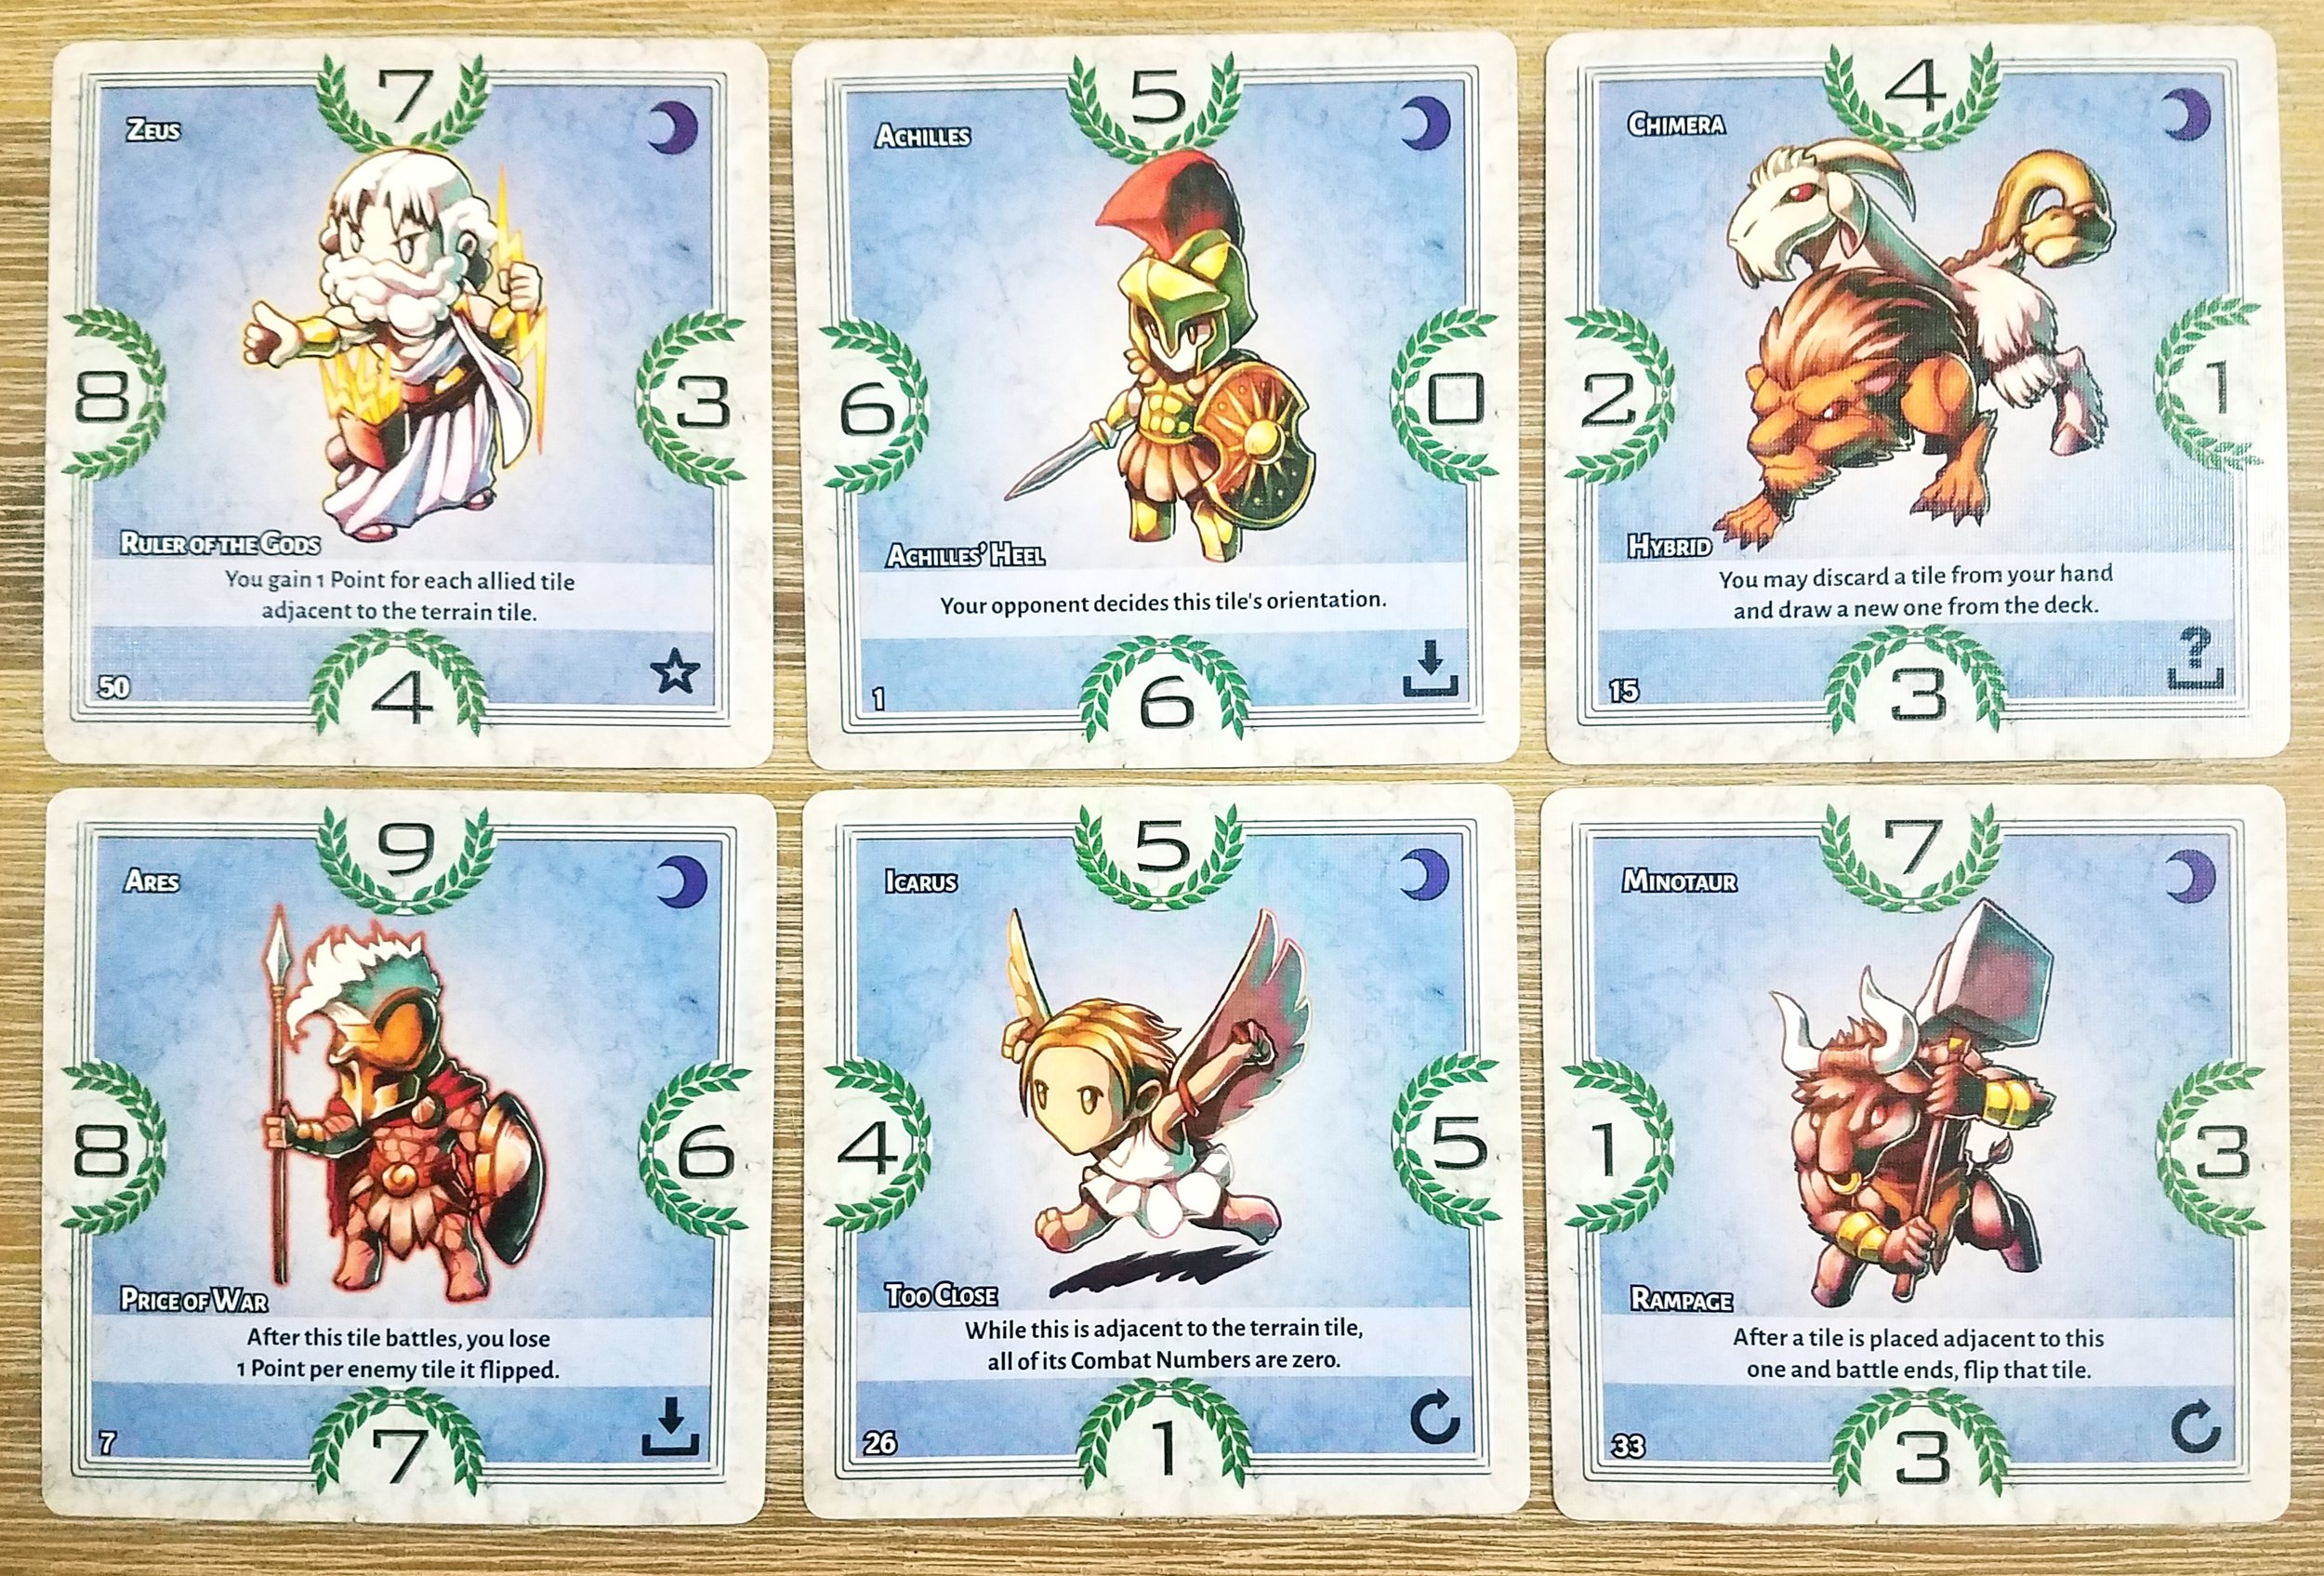 Cards representing gods, heroes, and monsters from Greek mythology.